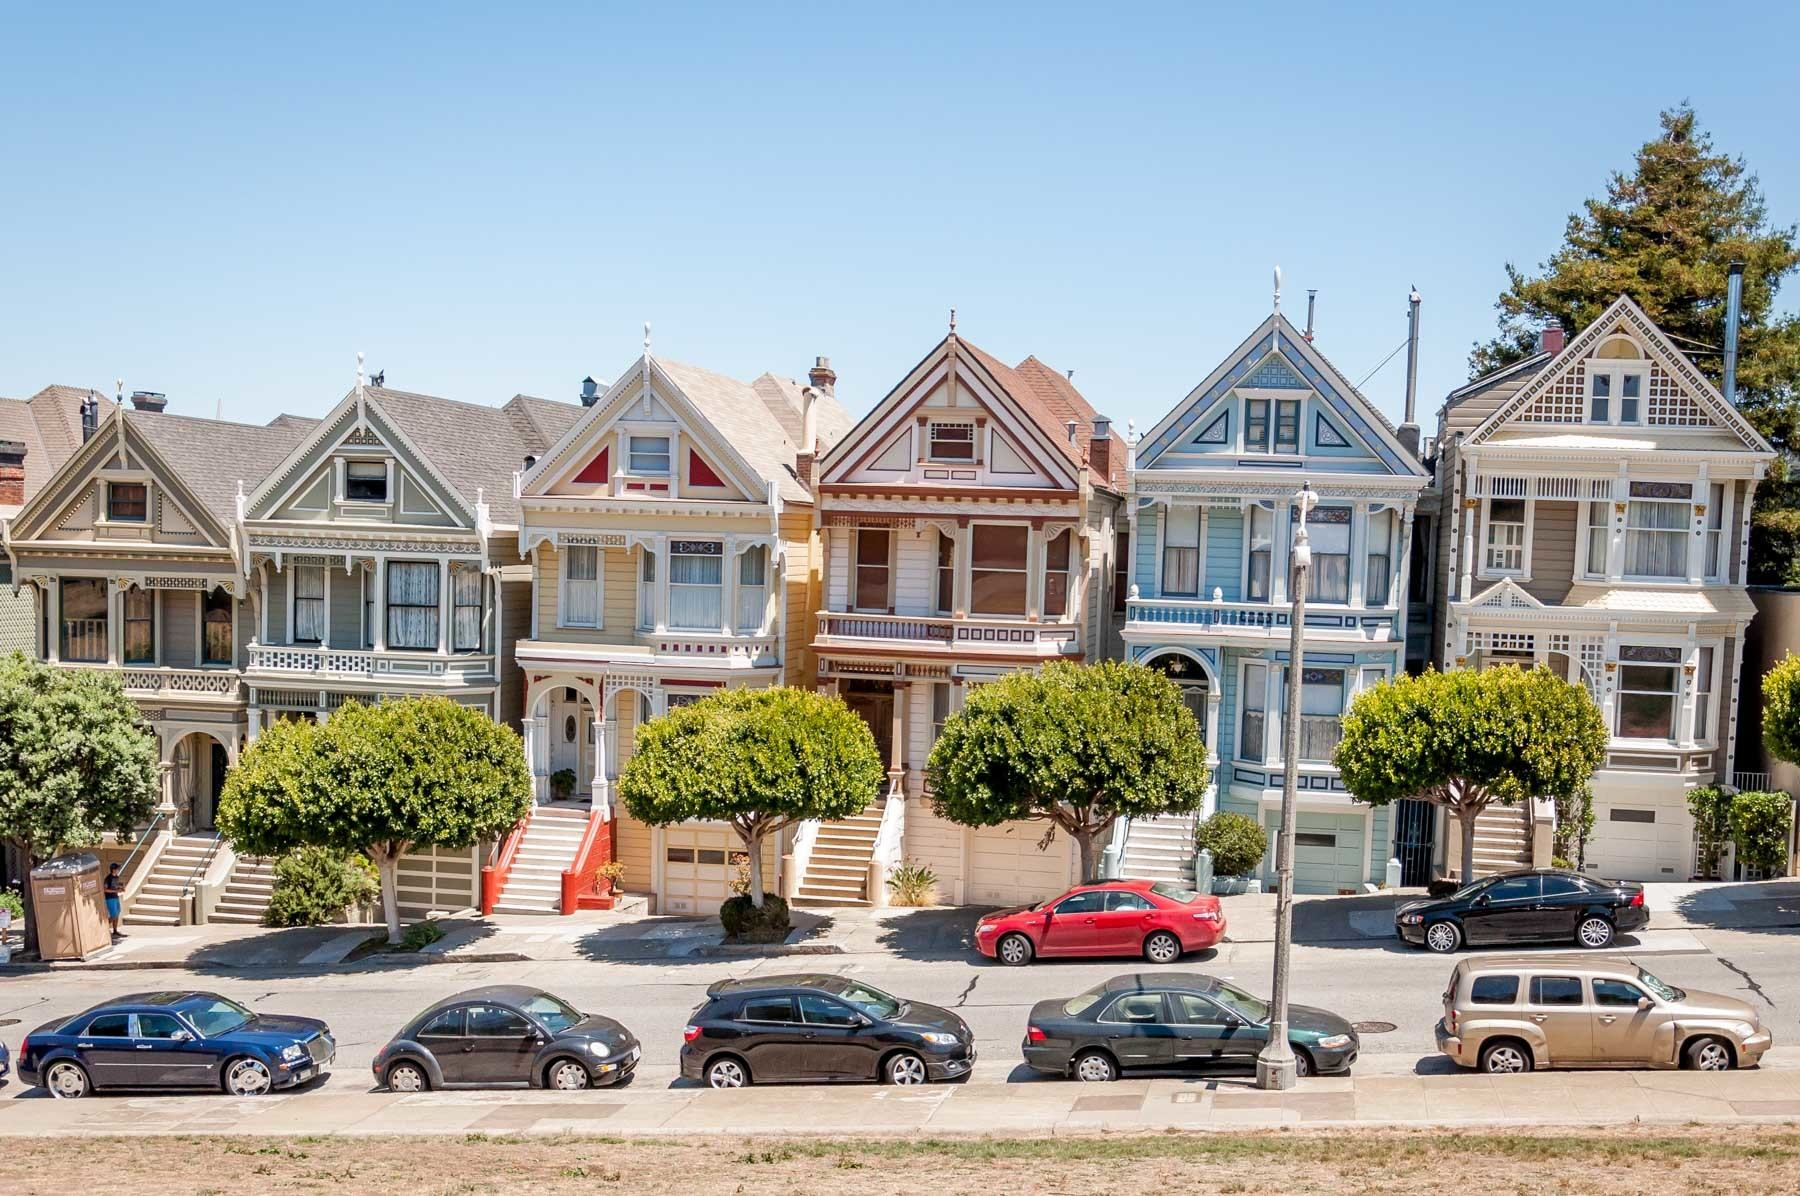 Brightly-painted Victorian homes in San Francisco known as the Painted Ladies